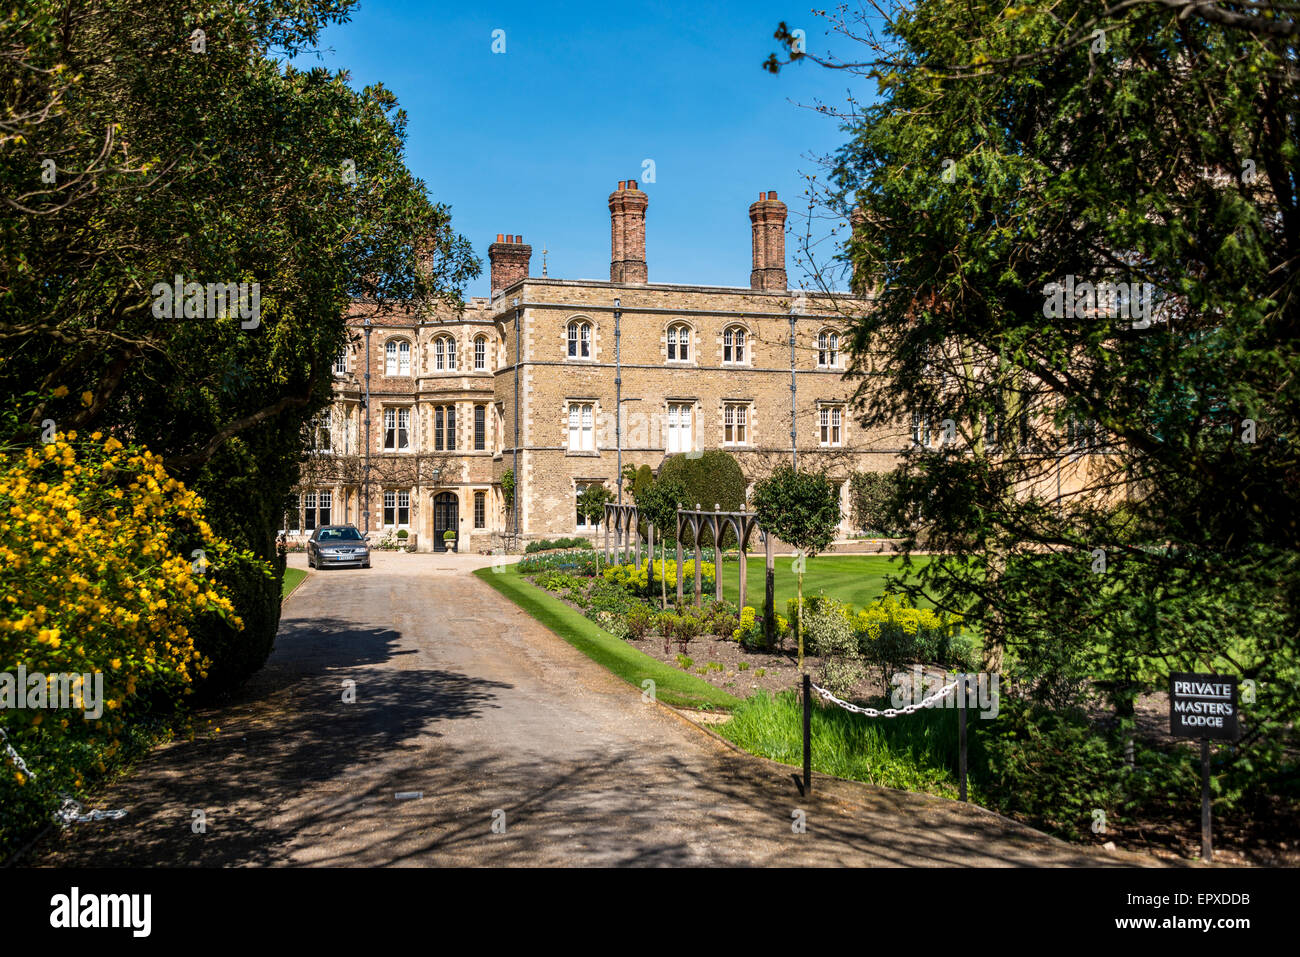 The Master's Lodge at Jesus College, a college of the University of Cambridge Stock Photo